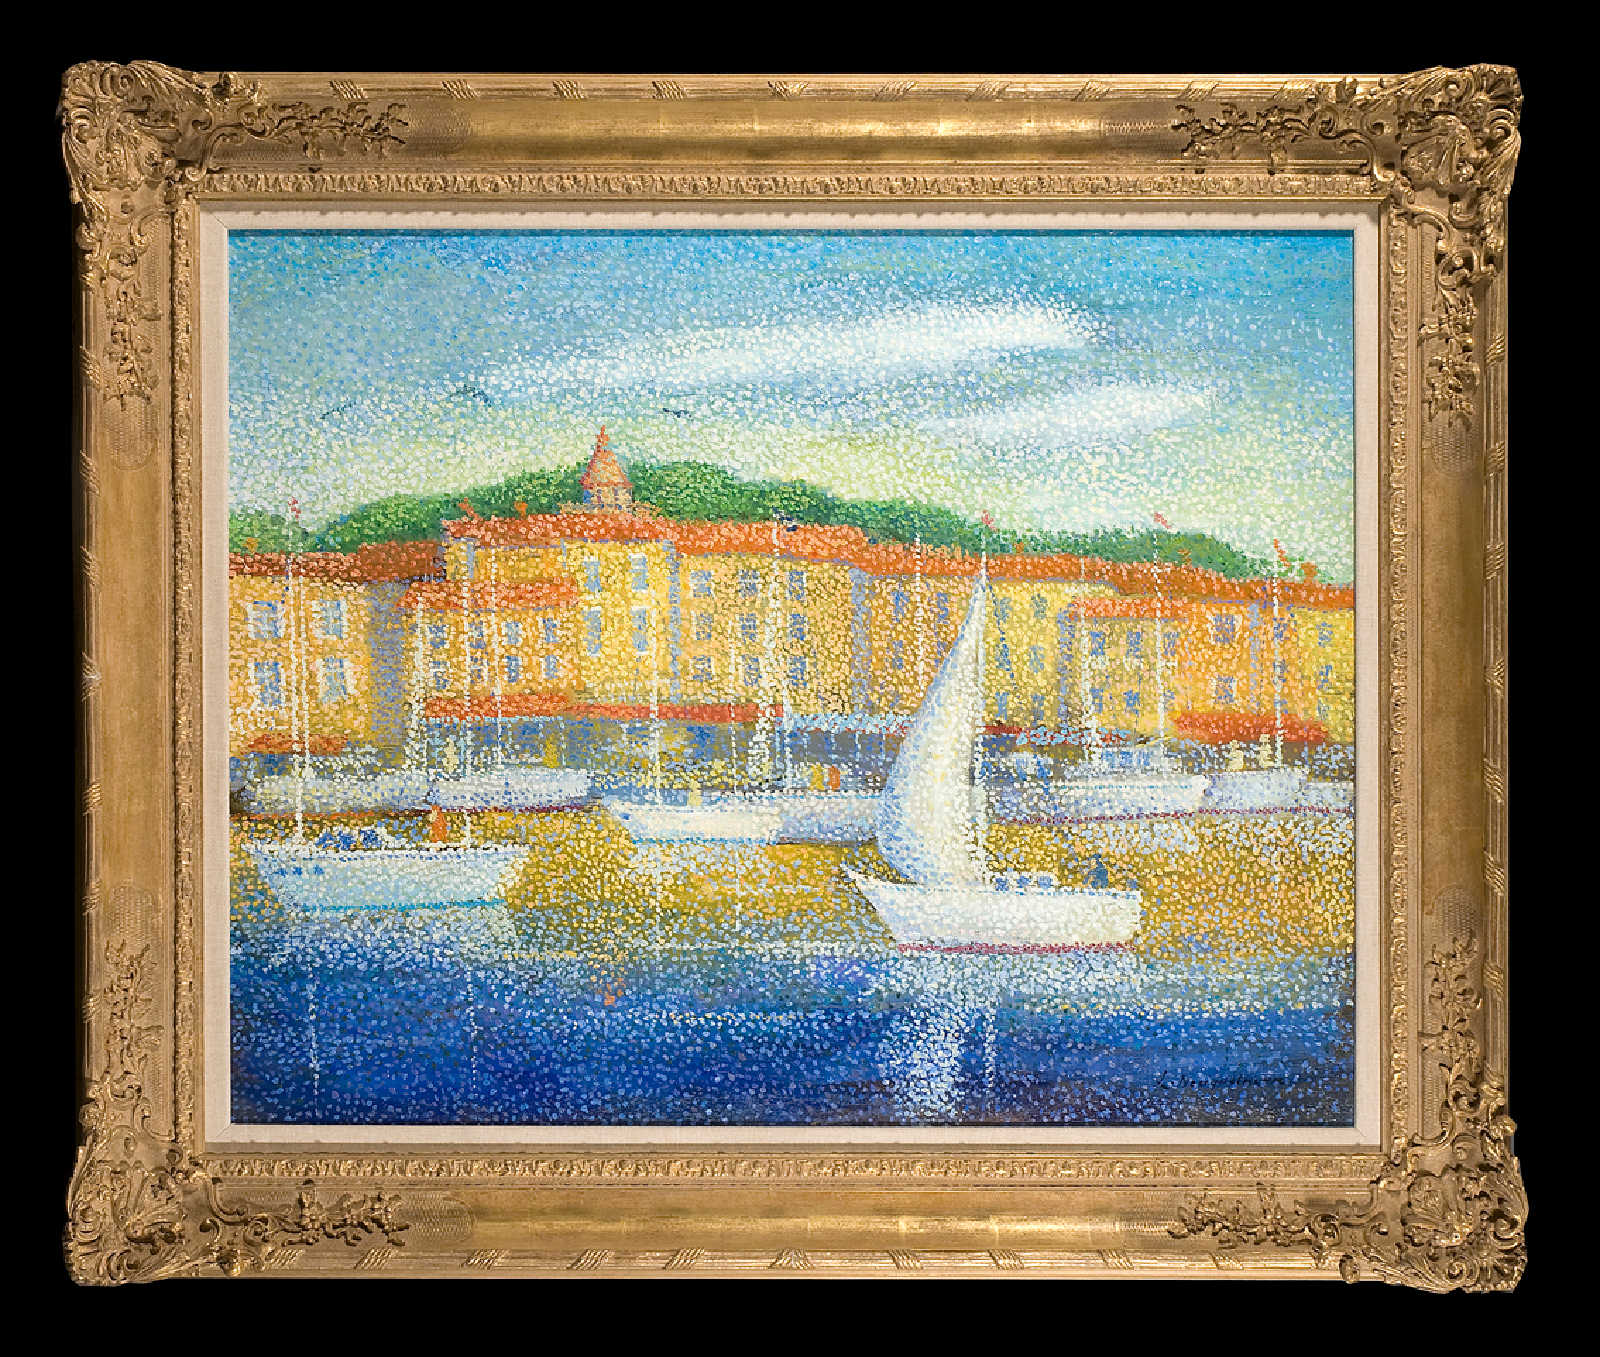 White boats on a harbour in summertime by Lucien Neuquelman